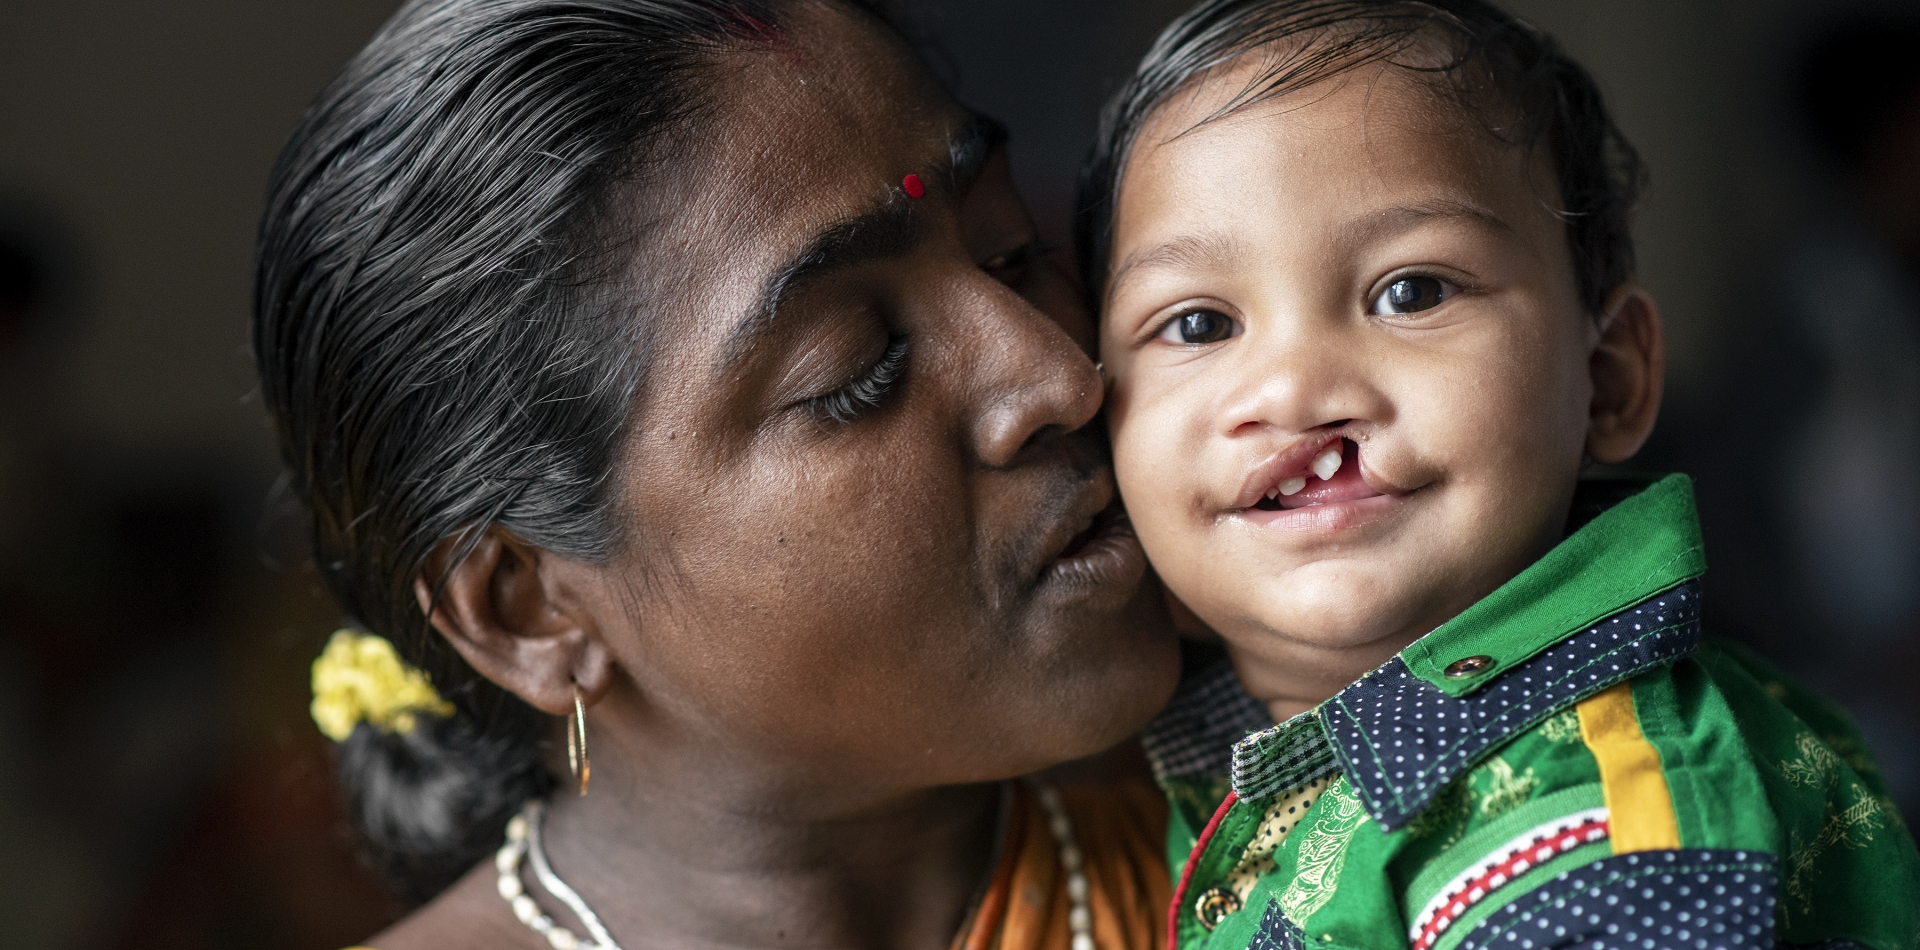 Child with a cleft lip being kissed by guardian, smiling into camera